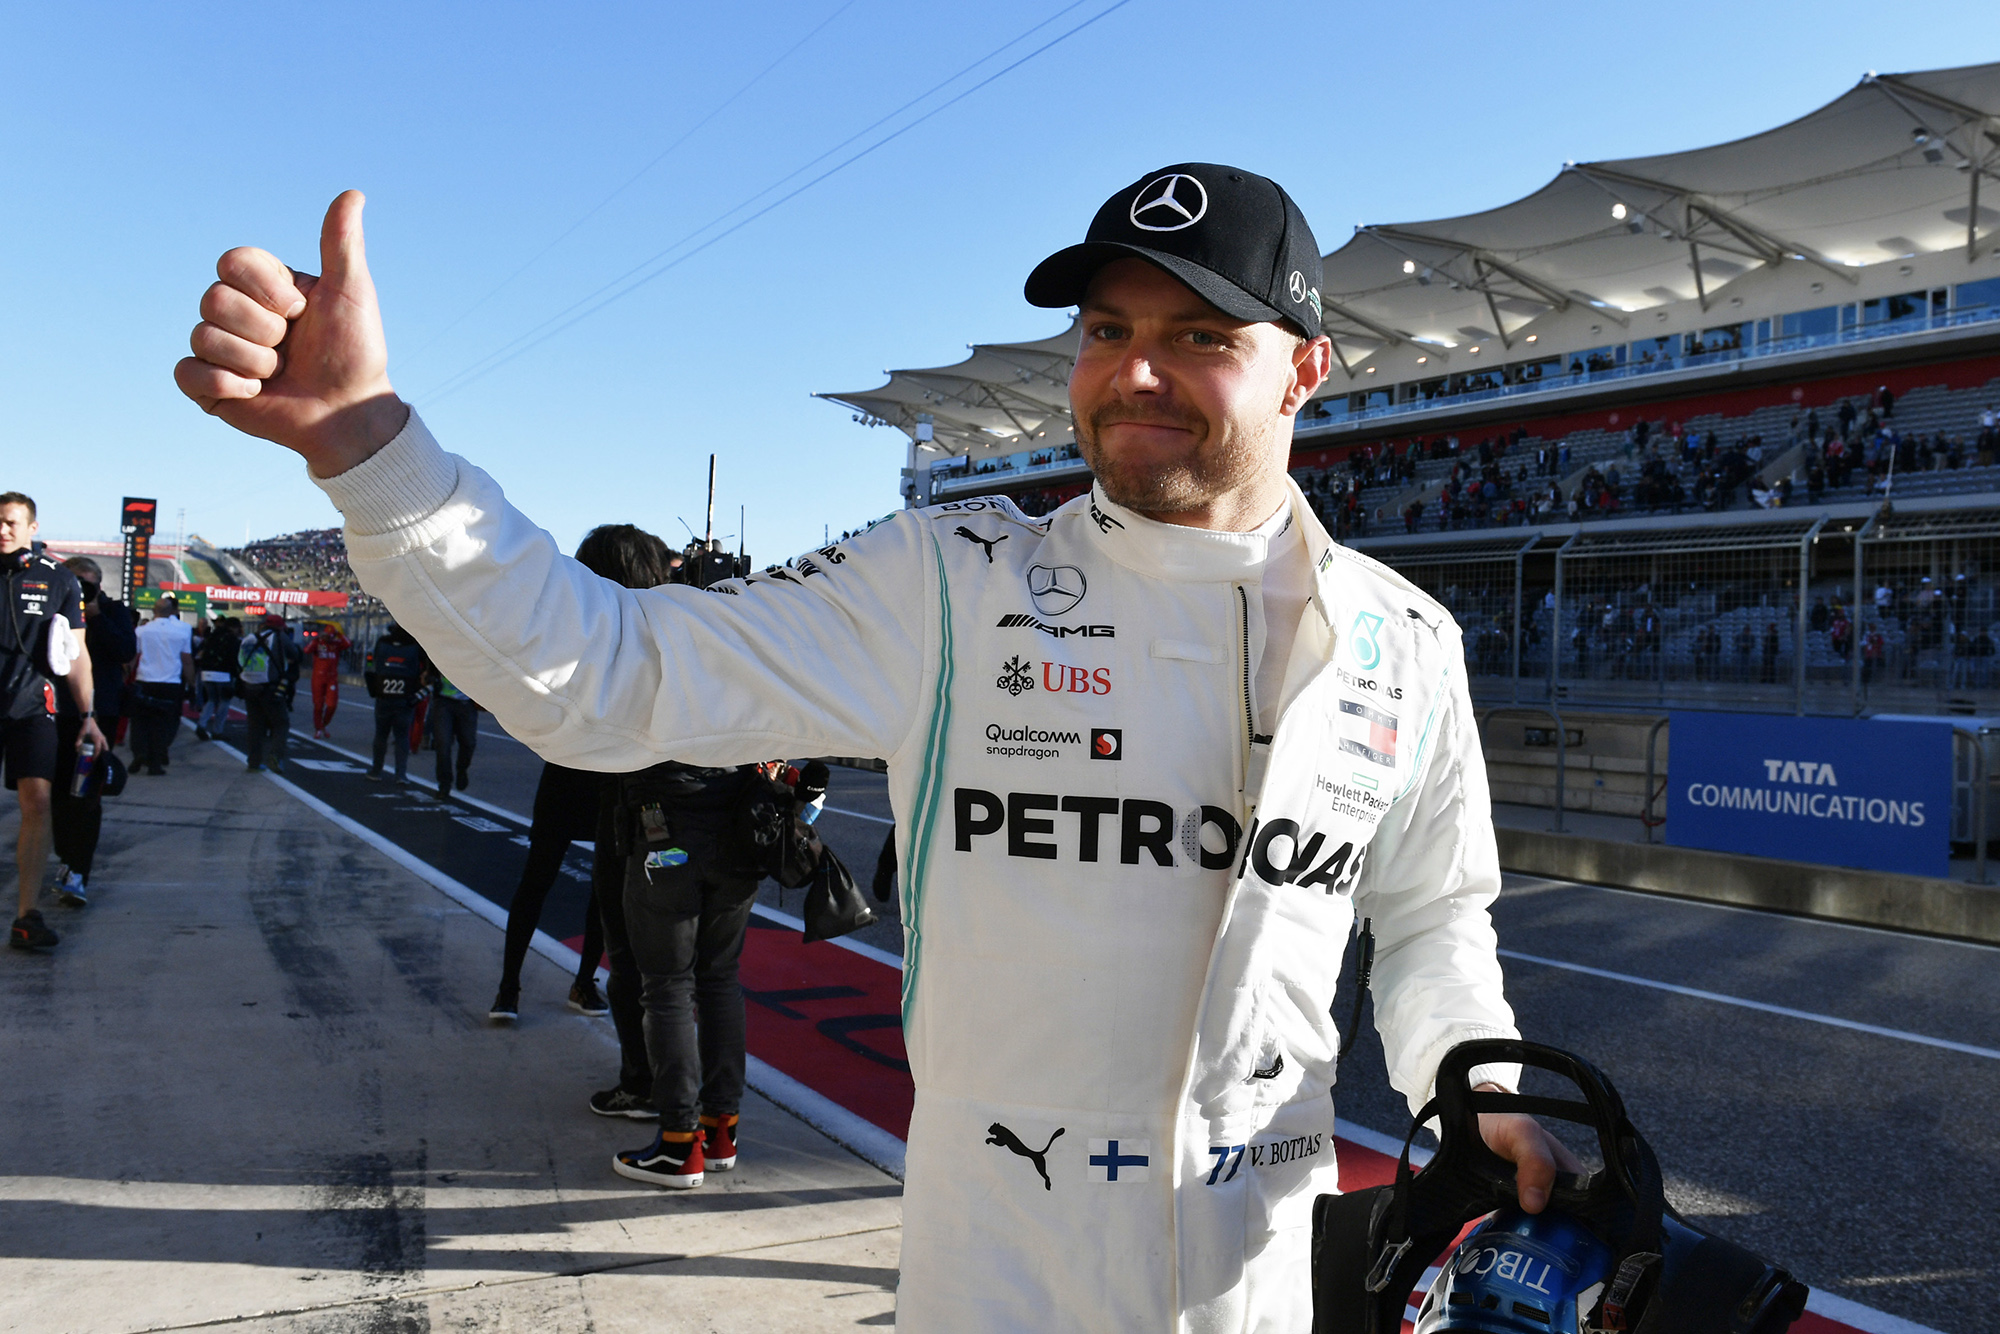 Valtteri Bottas gives the thumbs up after qualifying on pole for the 2019 US Grand Prix